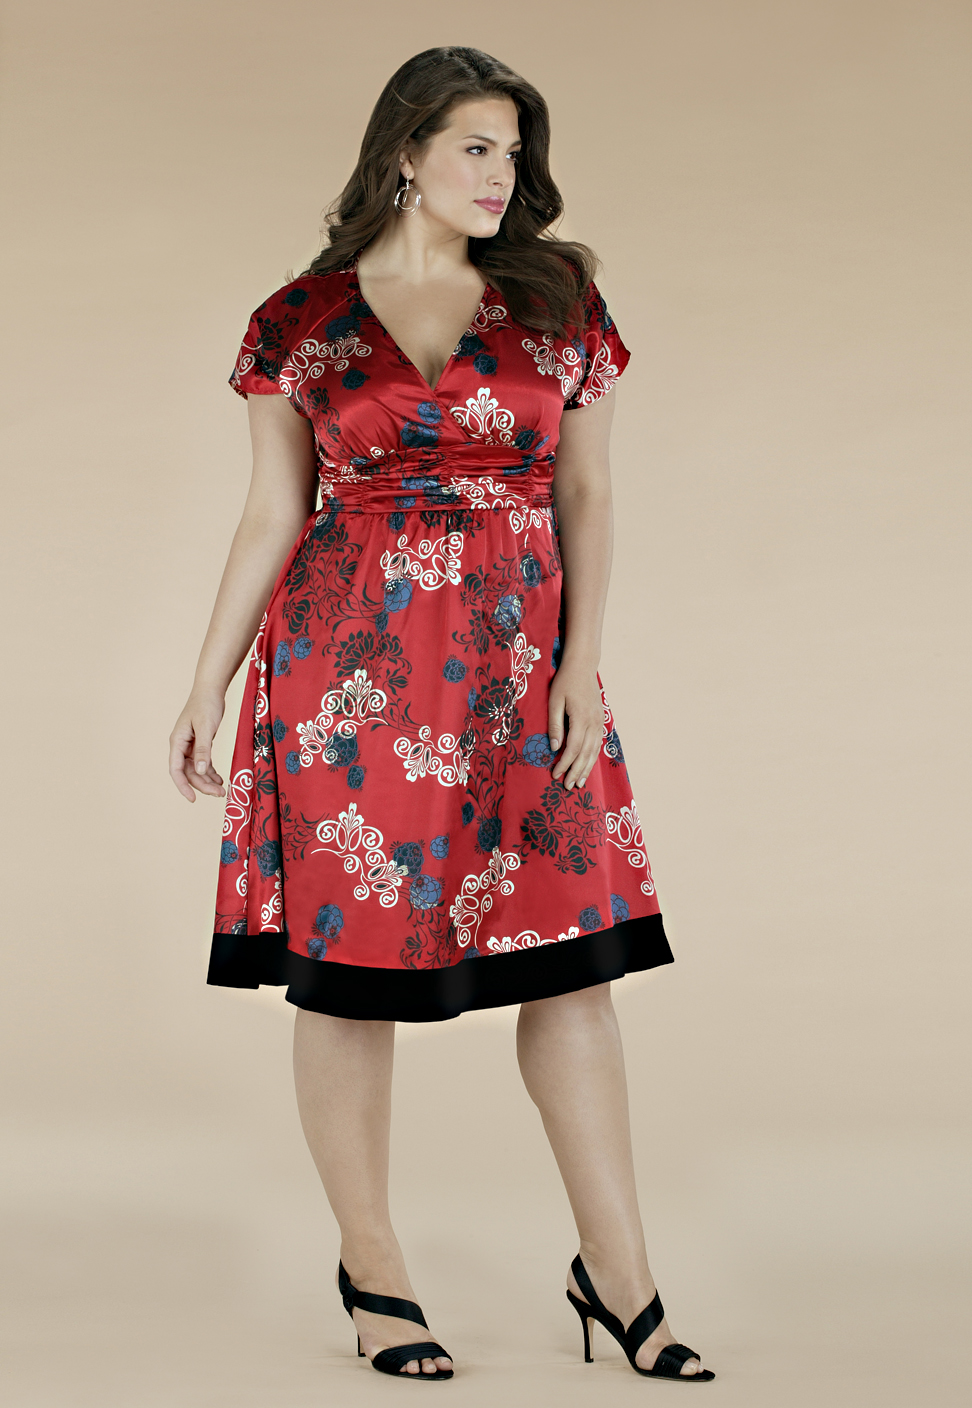 Cato Fashions Store Plus Size Cato Plus Size Fashion Stores